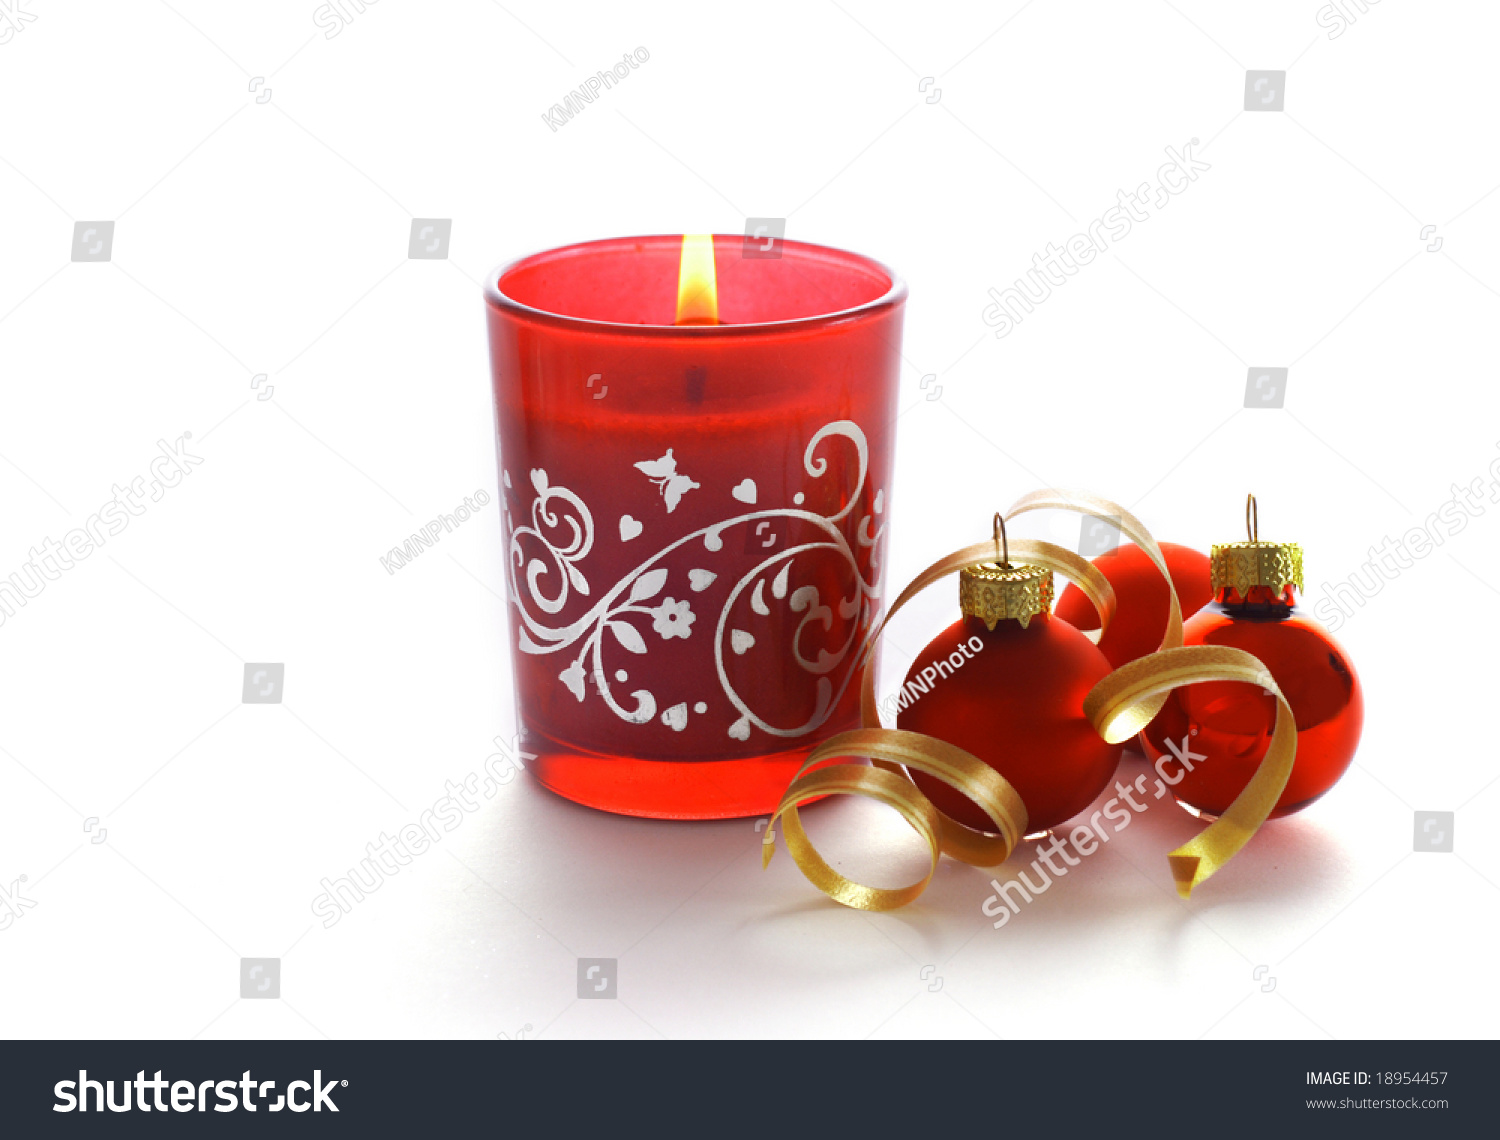 red candle white background - photo #31